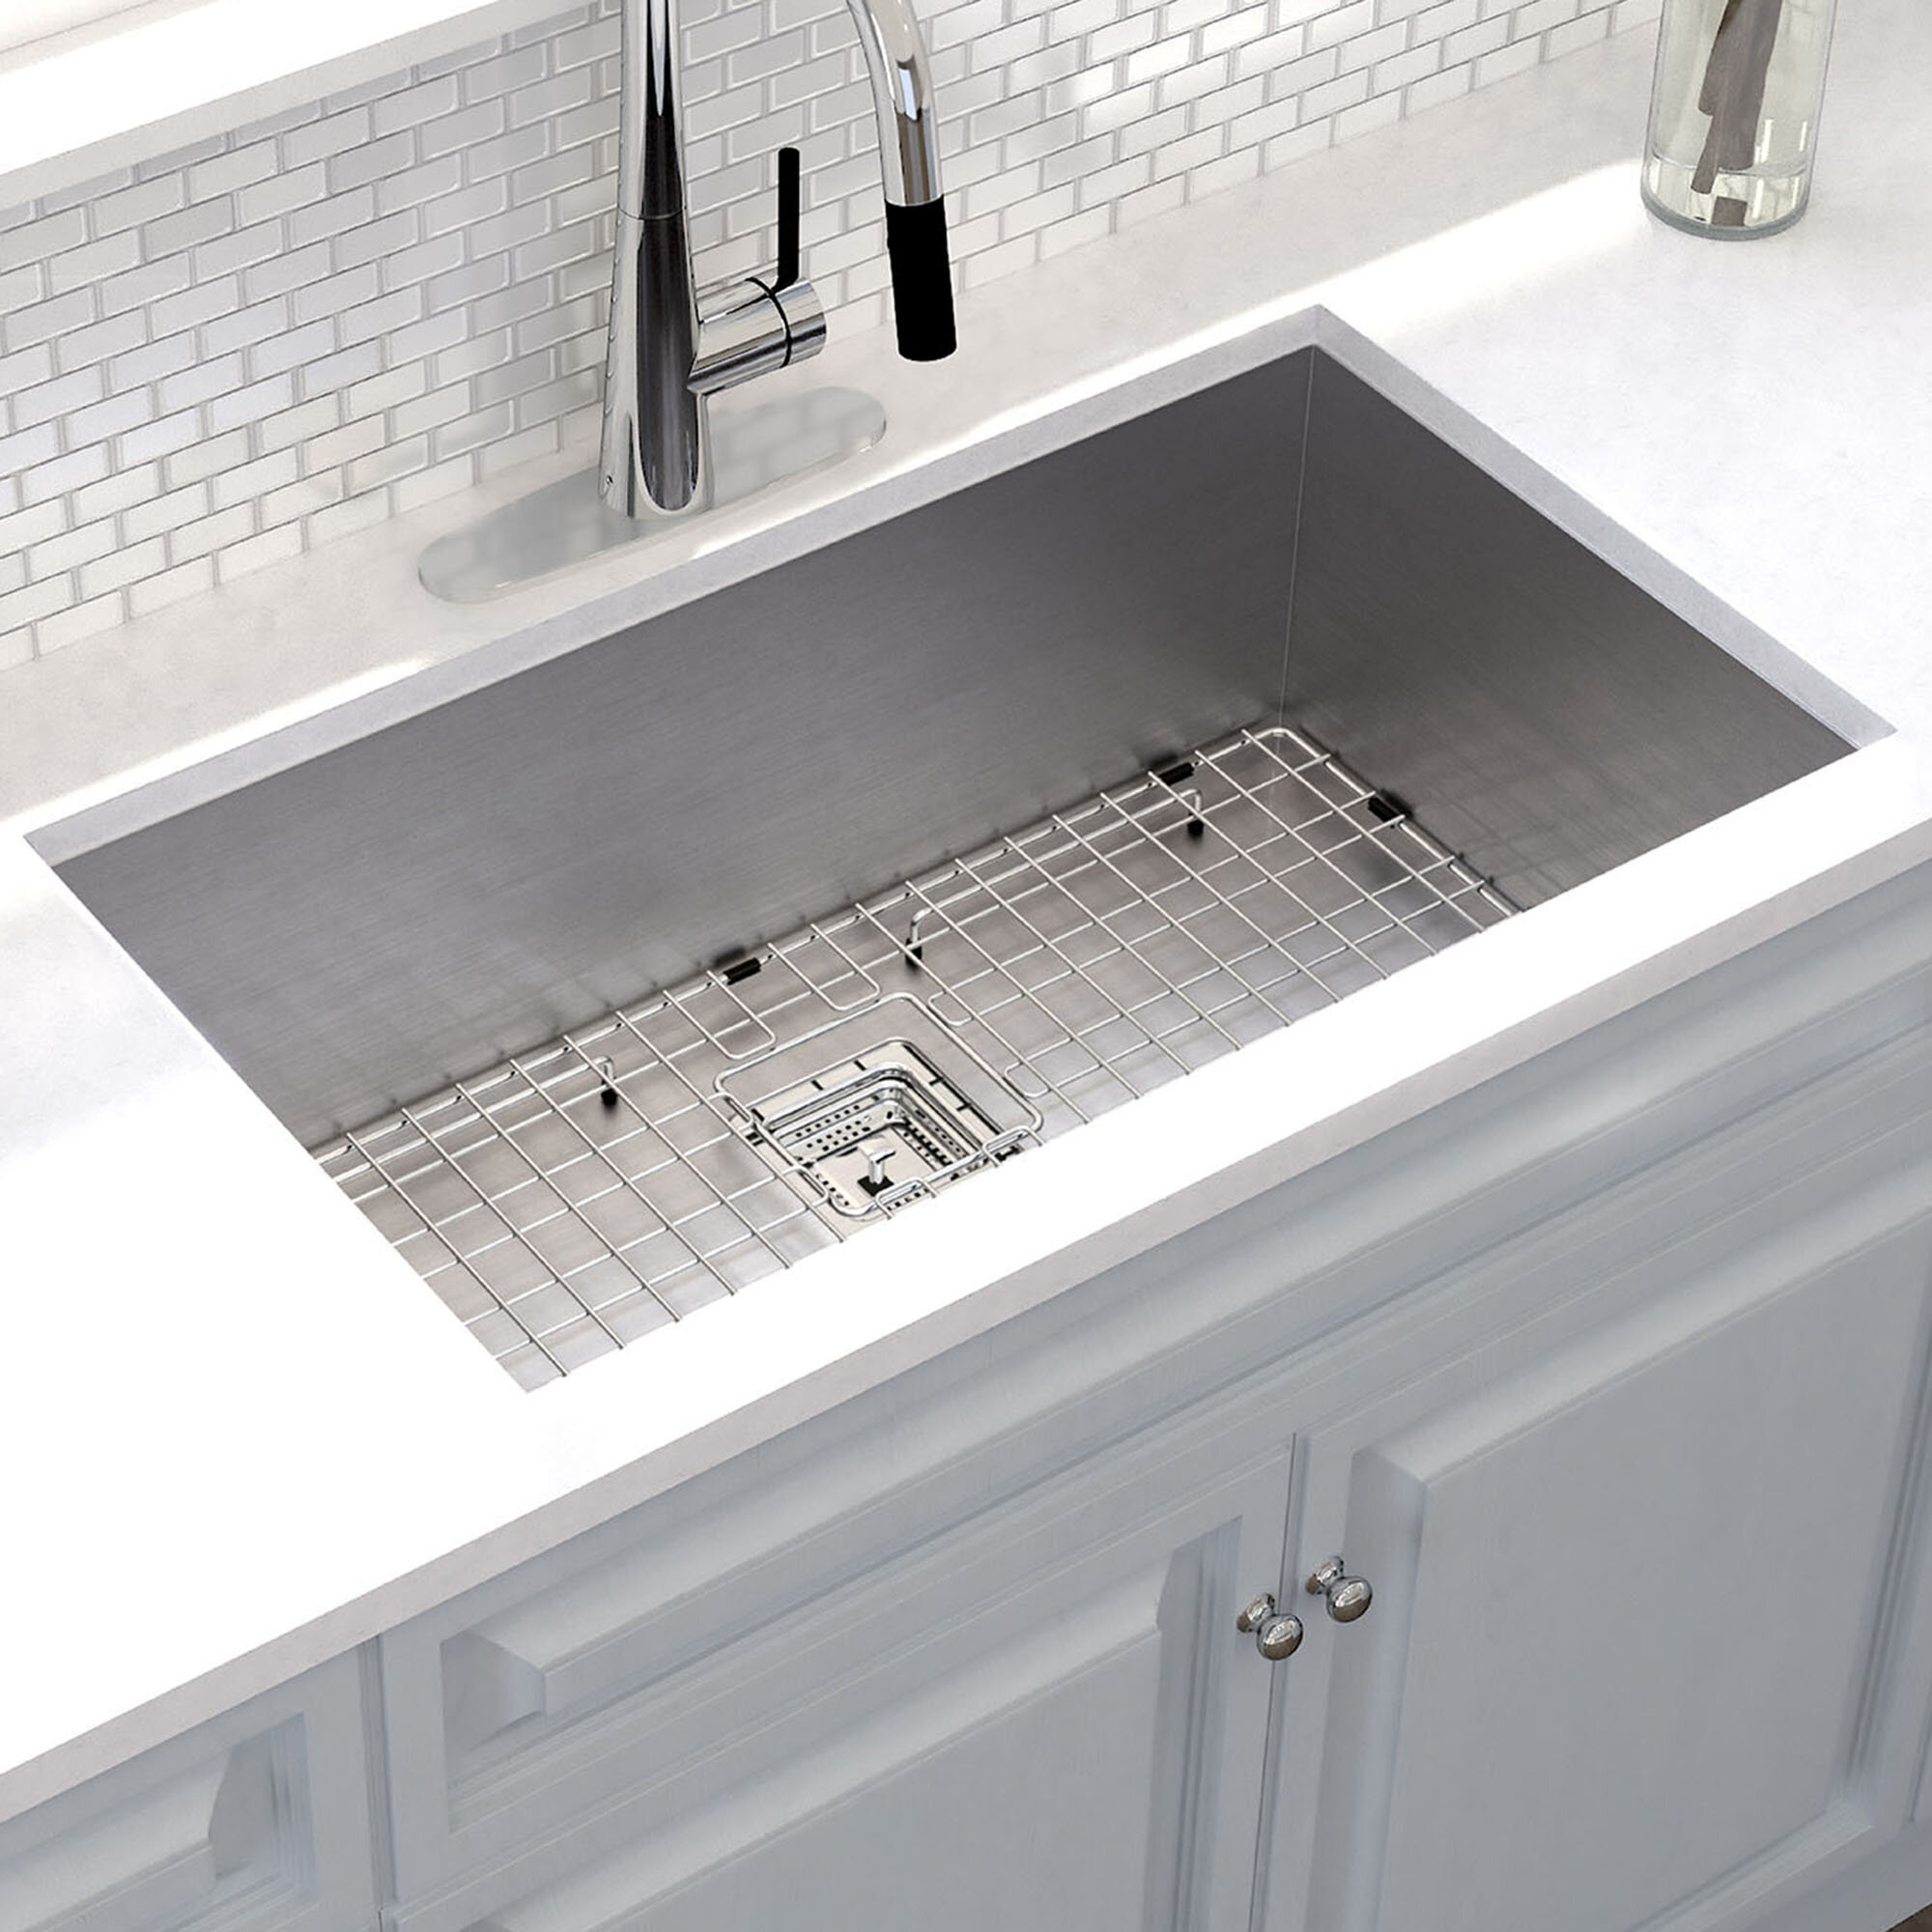 Khu32 Kraus Pax 31 X 18 Undermount Kitchen Sink With Drain Embly Reviews Wayfair